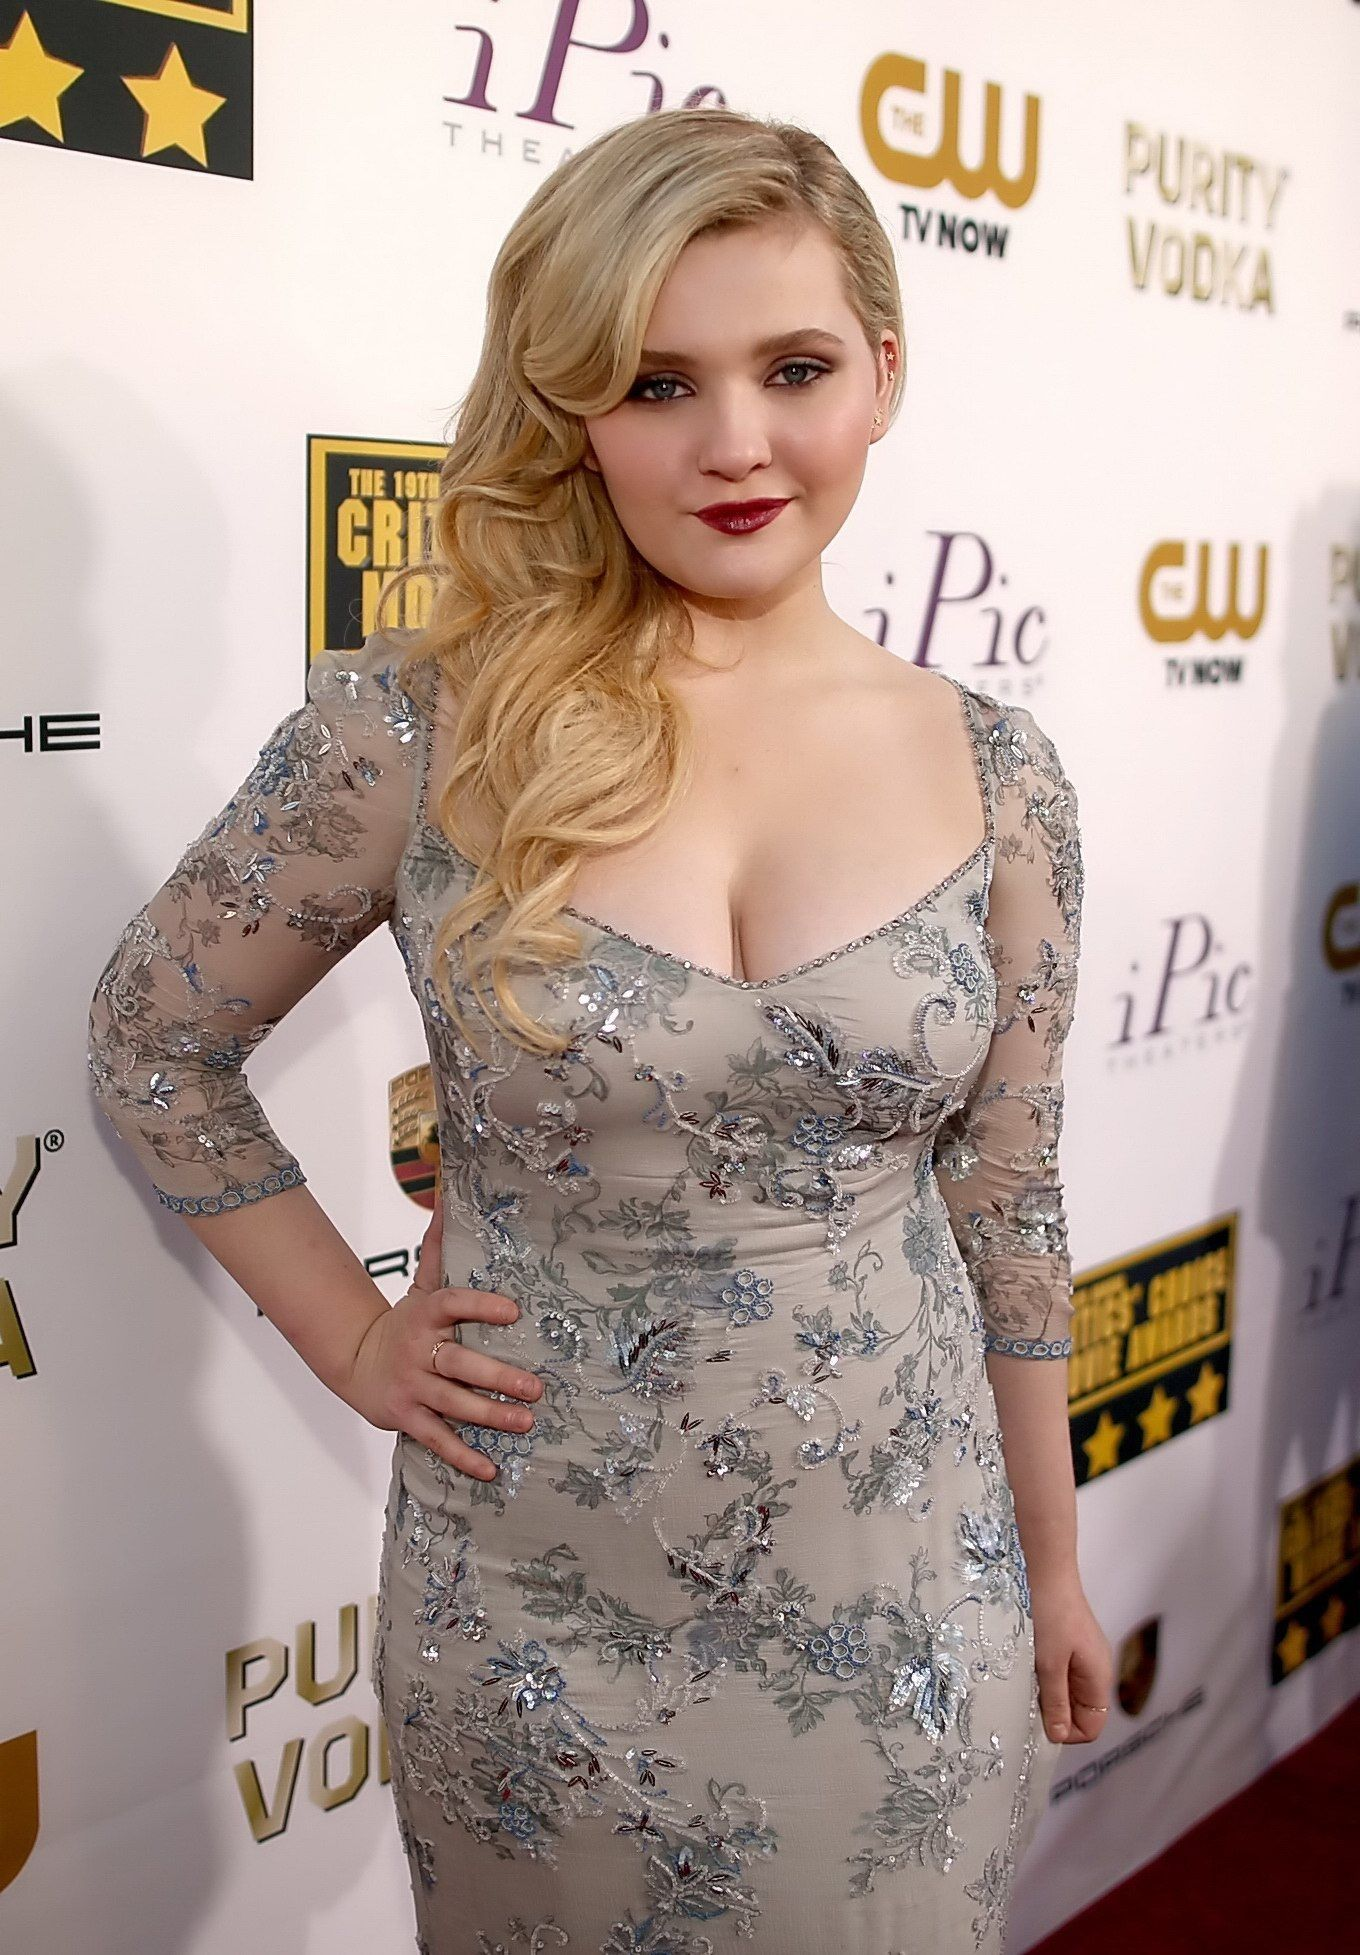 Abigail Breslin nude (57 photos), Sexy, Sideboobs, Twitter, braless 2020